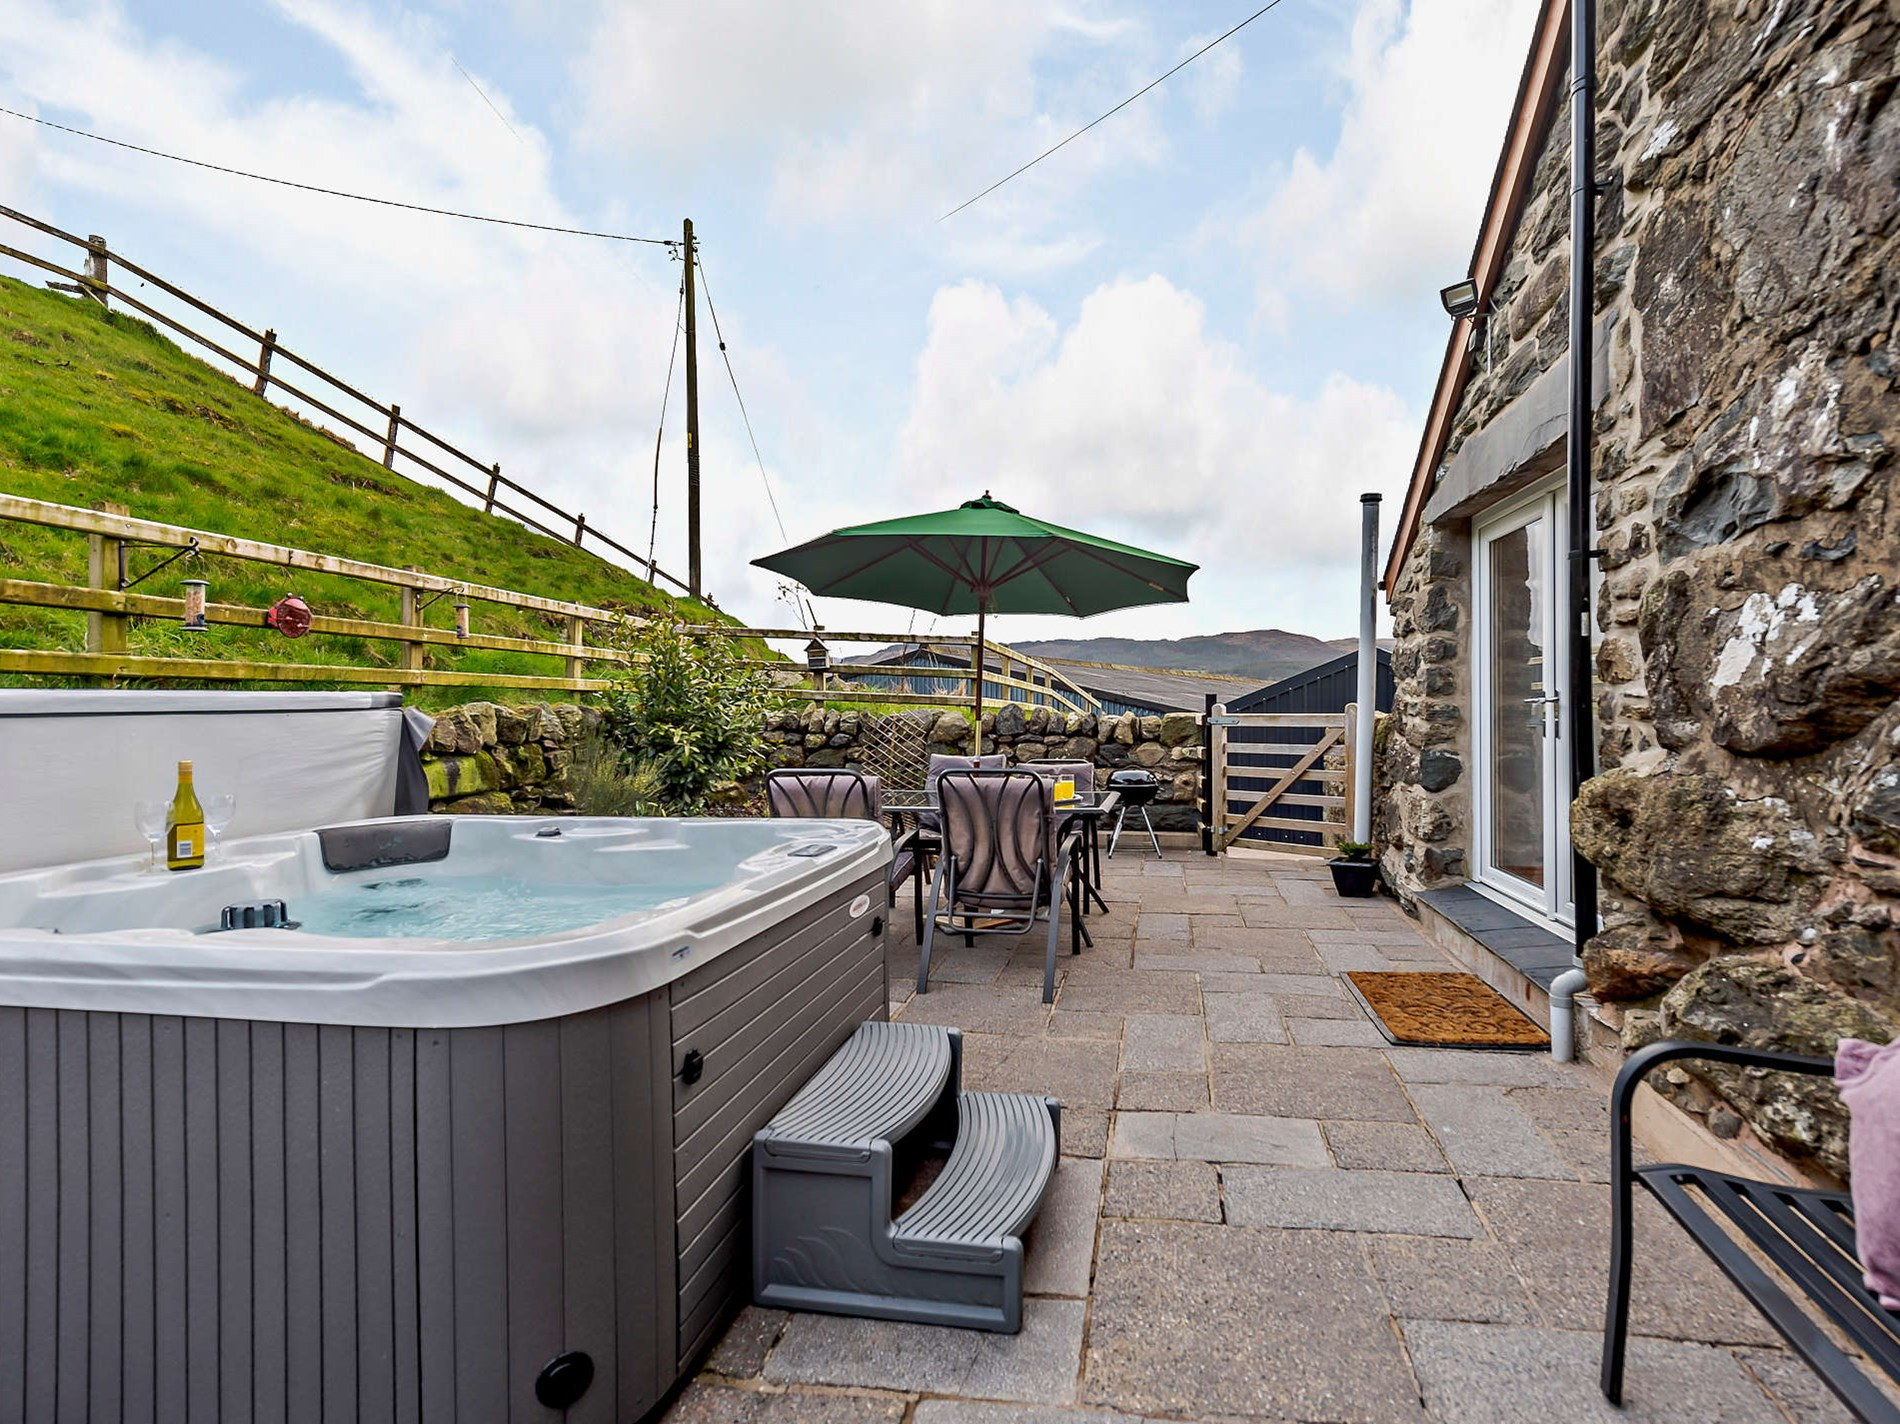 3 Bedroom Cottage in Bala, Snowdonia, North Wales and Cheshire